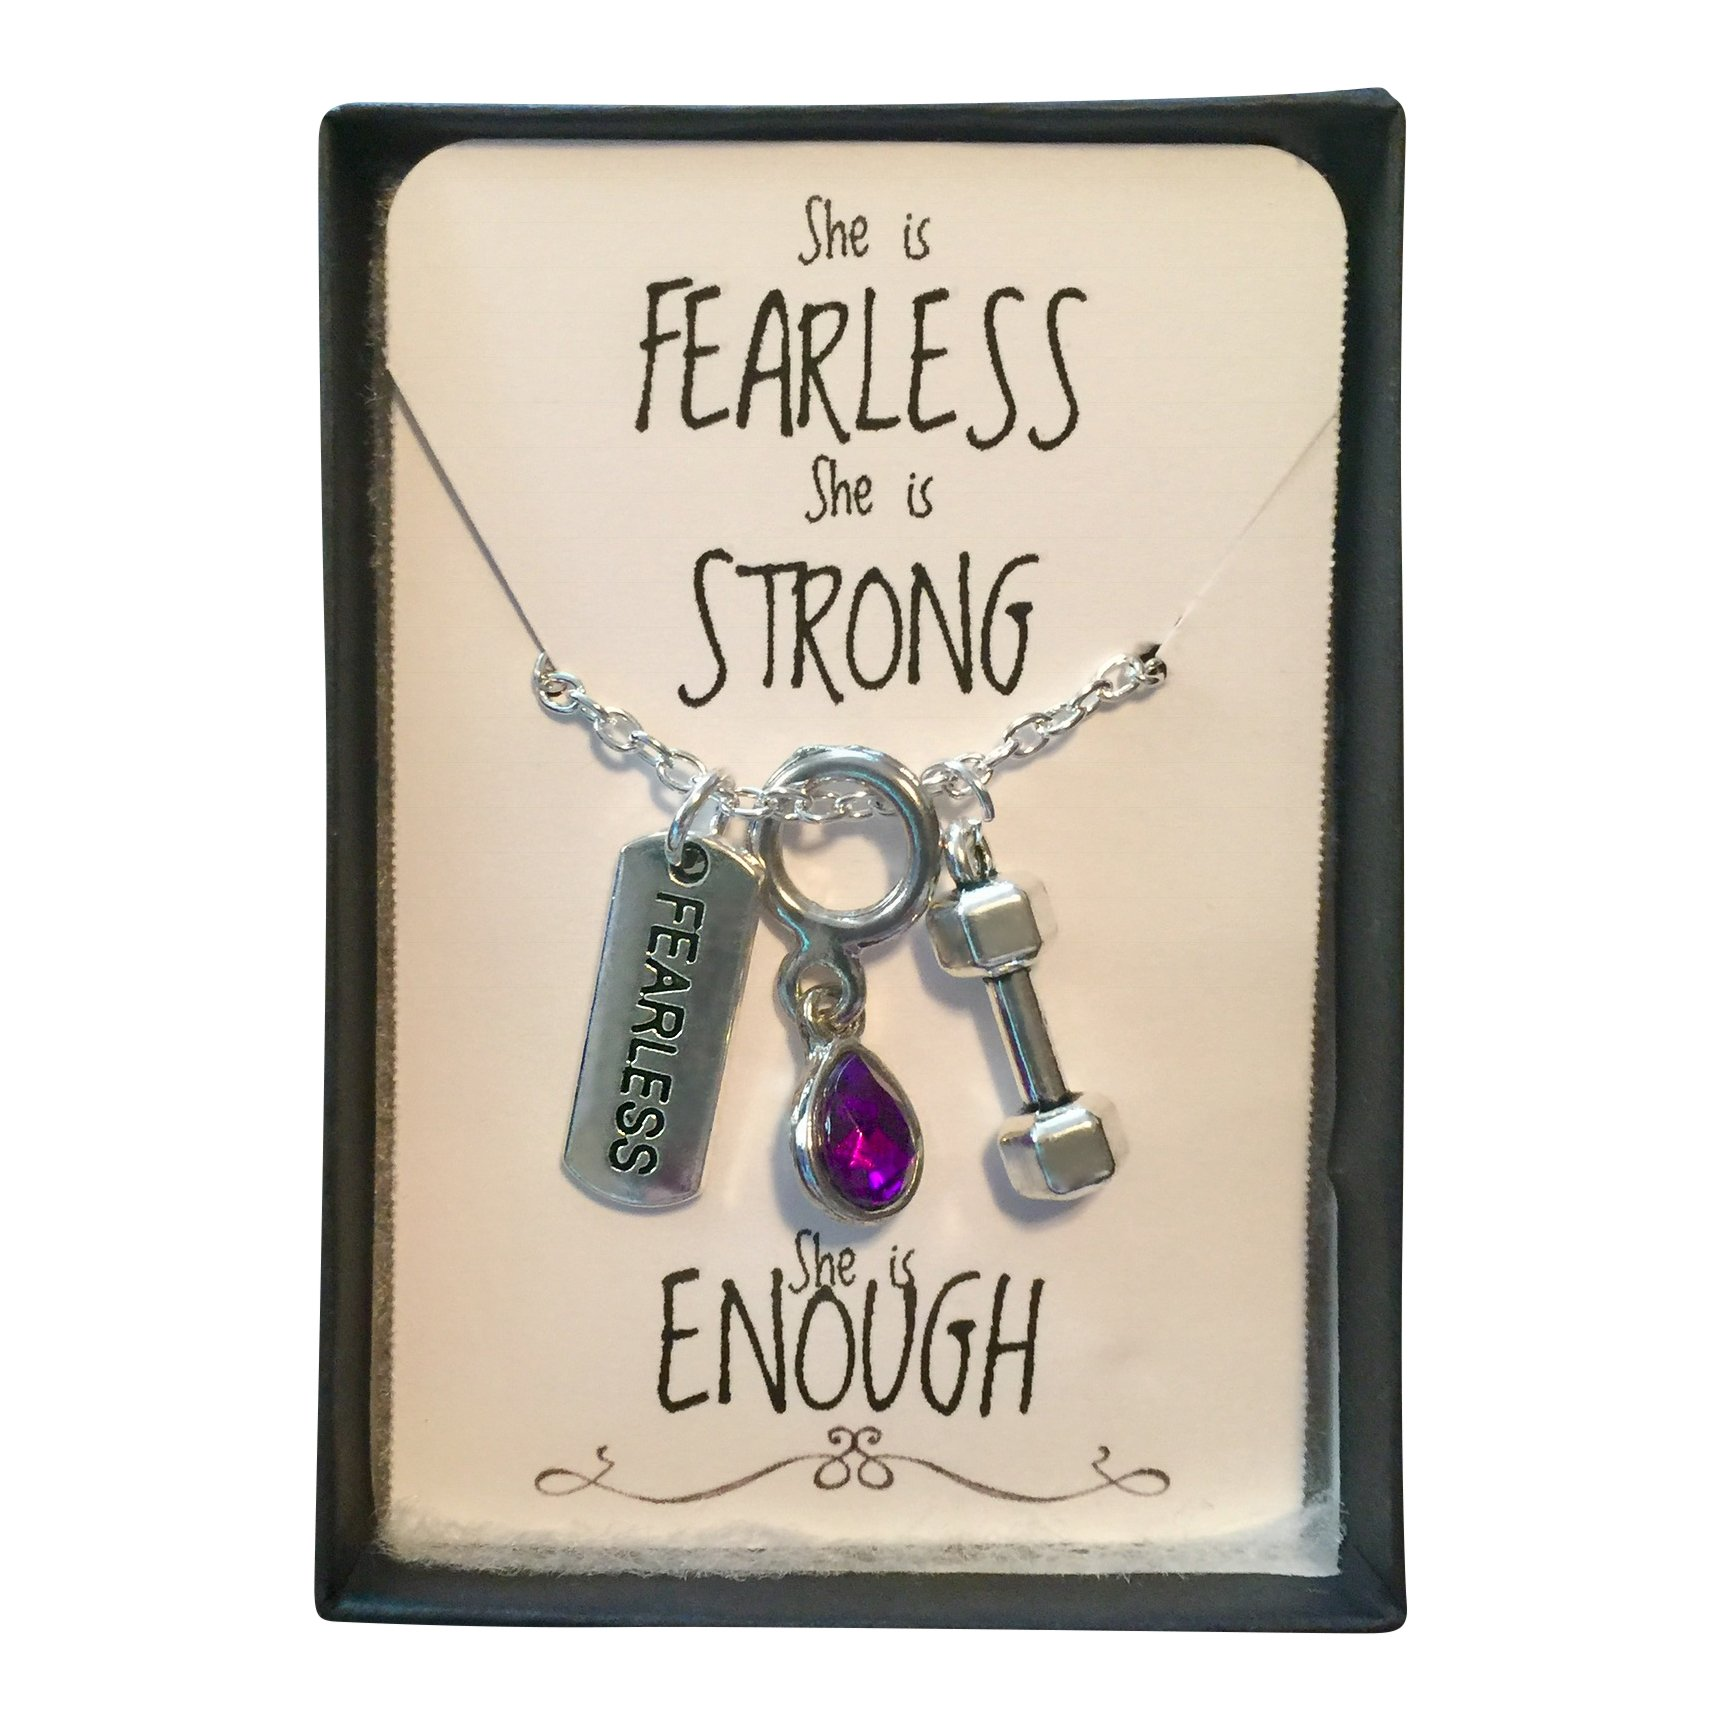 Harper Olivia Purple Tear Drop Stone Cluster Necklace 'She is FEARLESS, She is STRONG, She is ENOUGH' Charm Necklace in gift box Crossfit Workout Jewelry